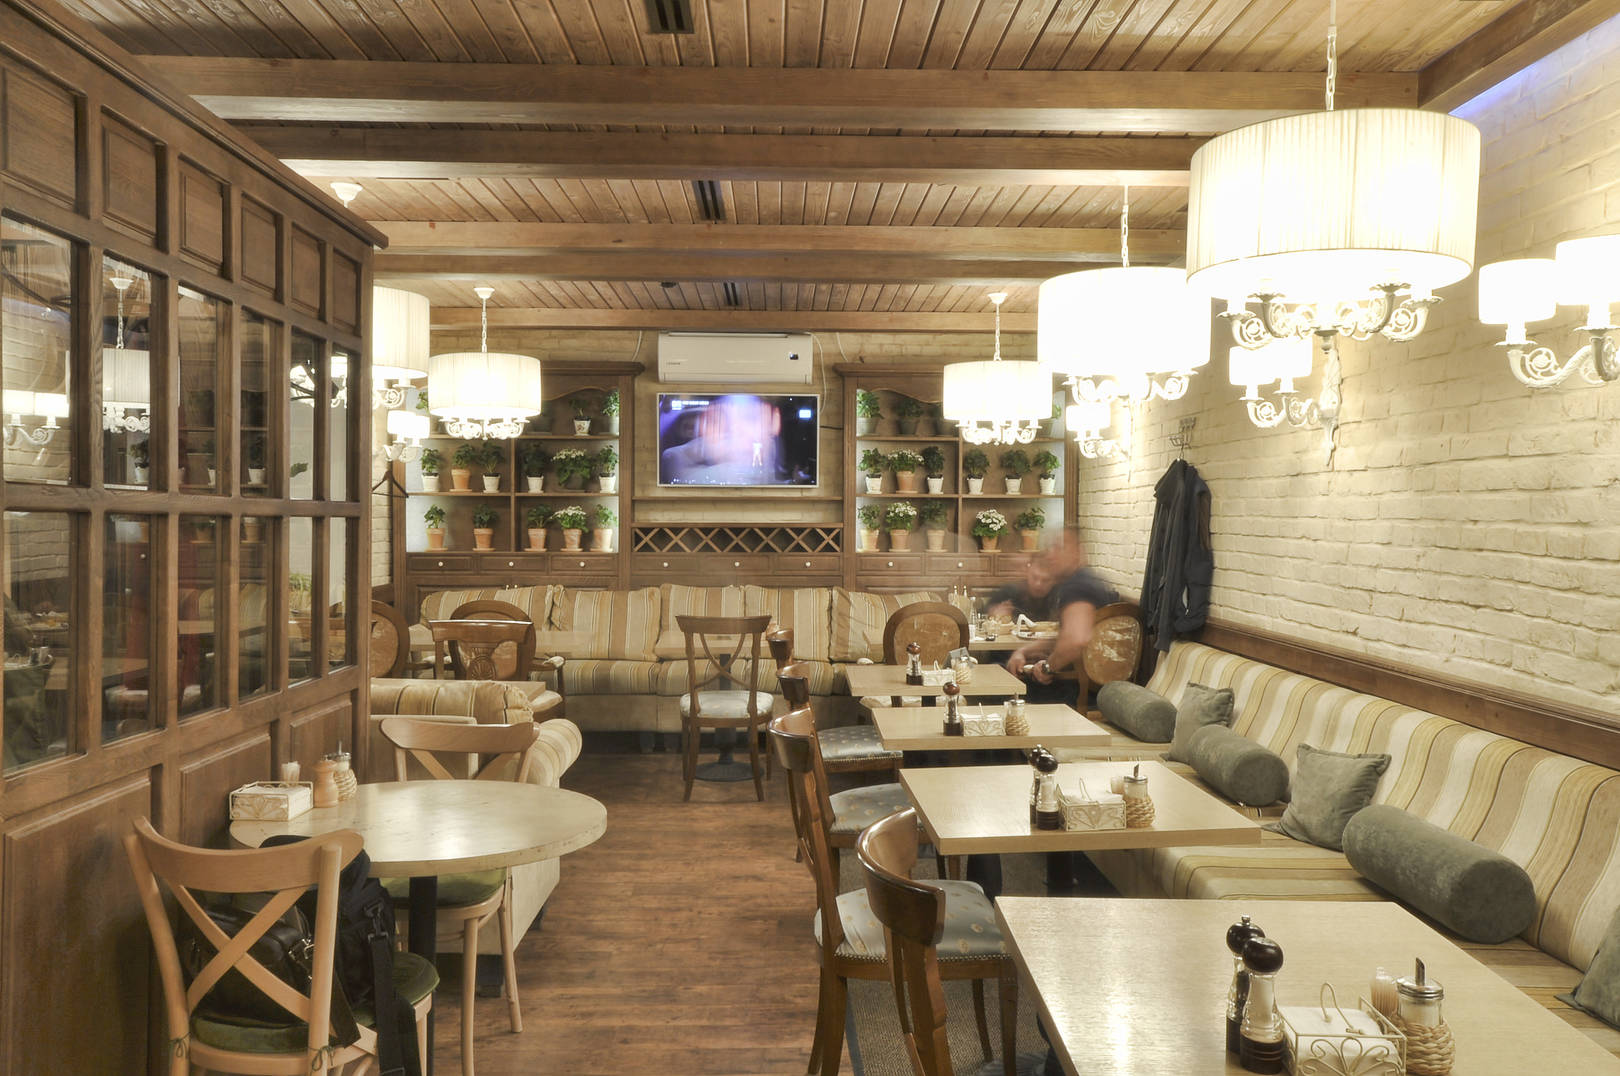 Rustic style cafe NAUTILUS - interior cozy cafe-bar in the city of Perm, the redesign is completed interior design studio ALLARTSDESIGN, designer Saranin Artemy.